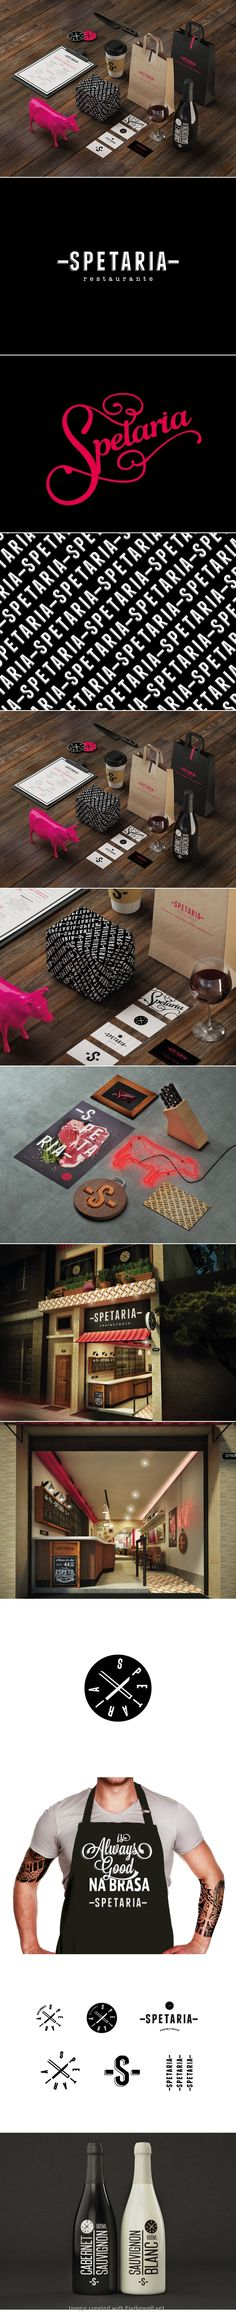 Spetaria great #identity #packaging #branding curated by Packaging Diva PD